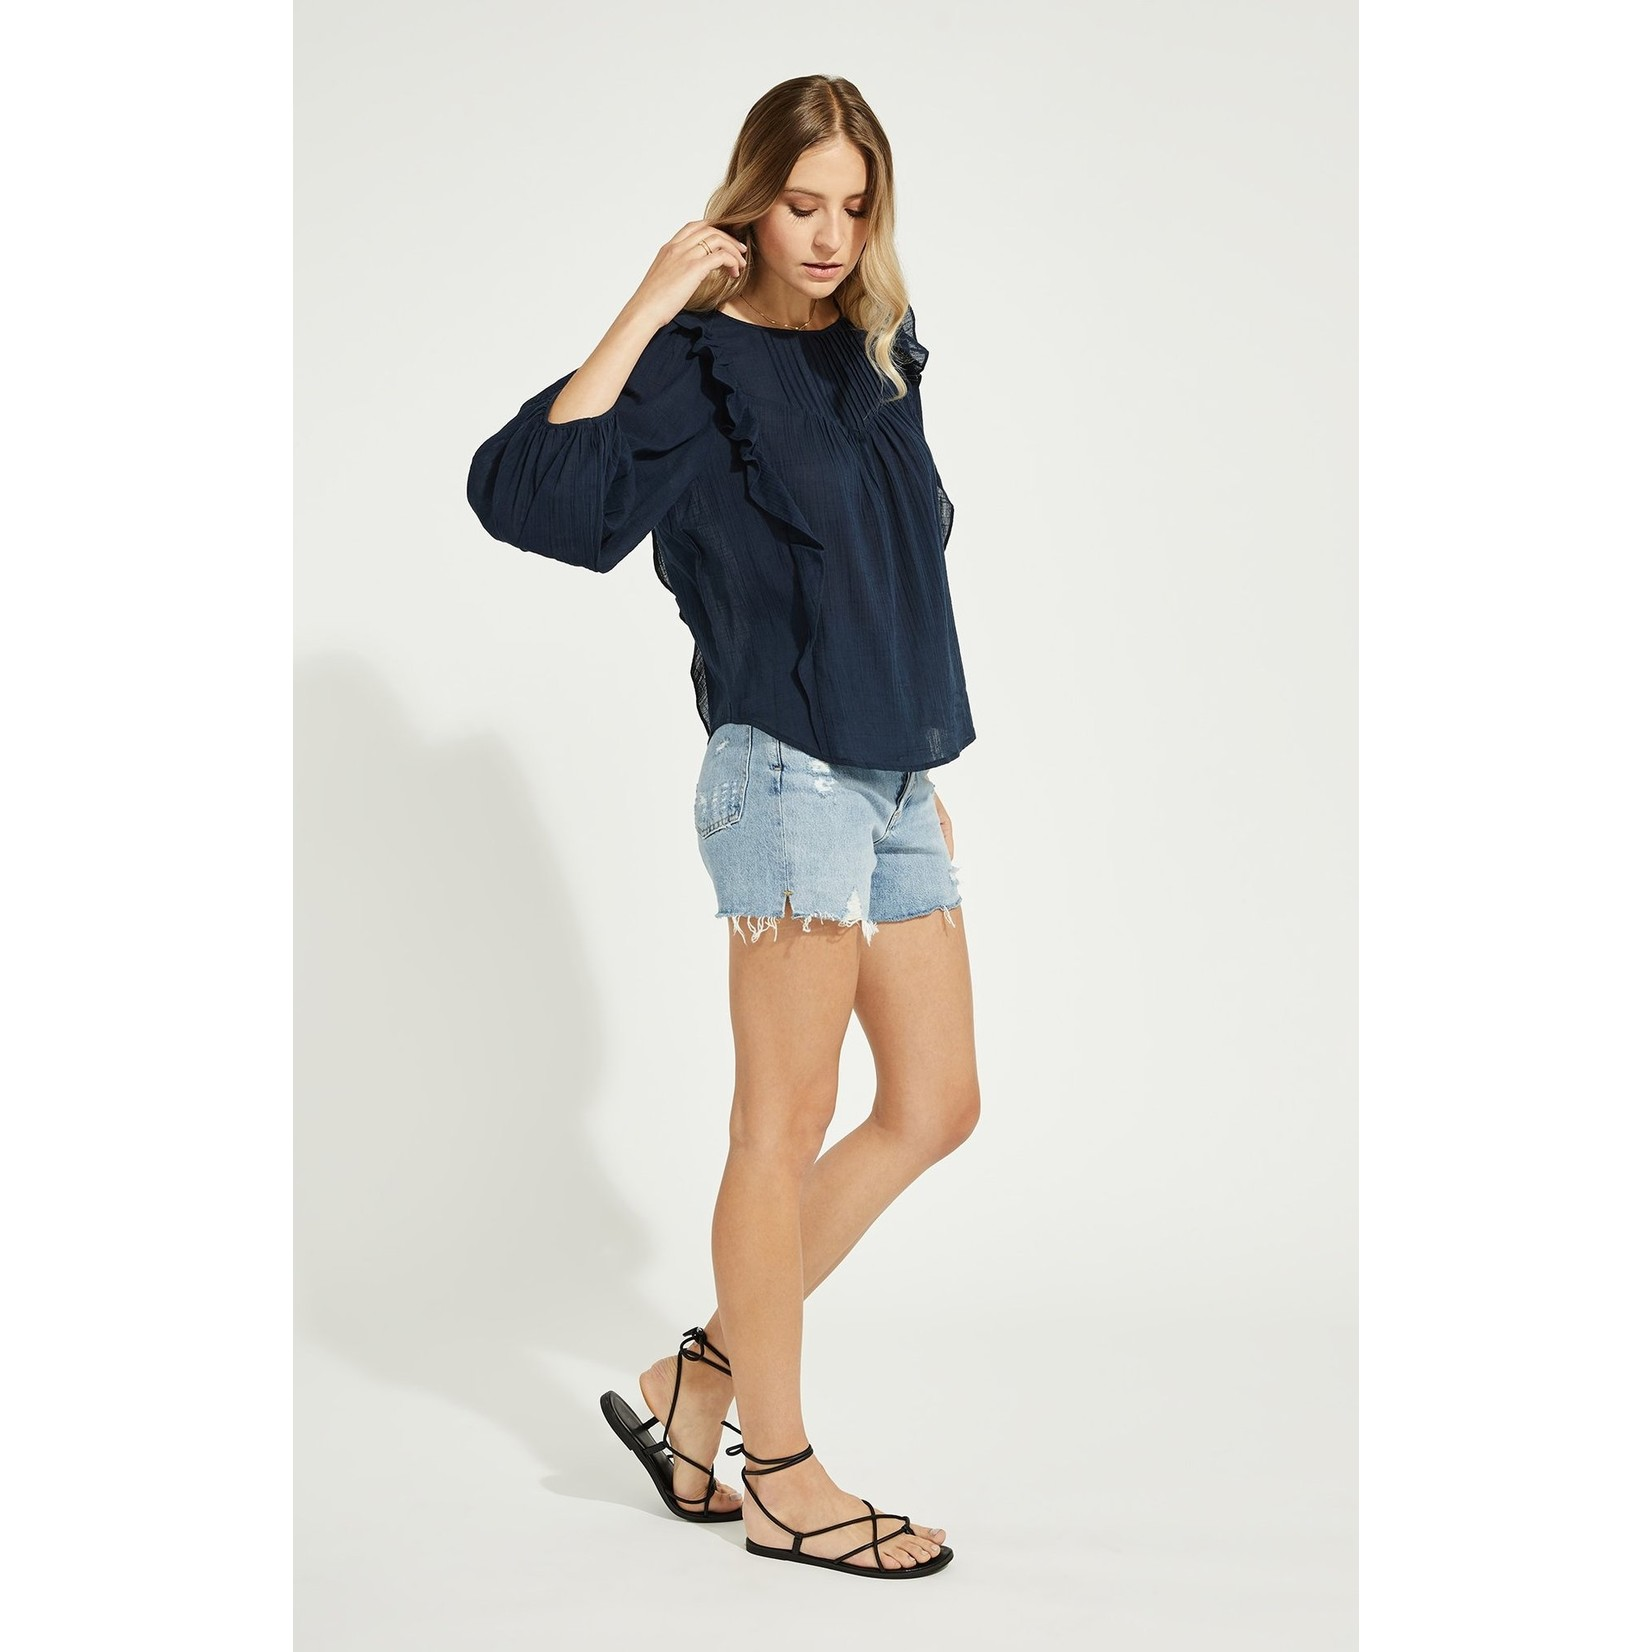 GENTLE FAWN LYDIA BLOUSE